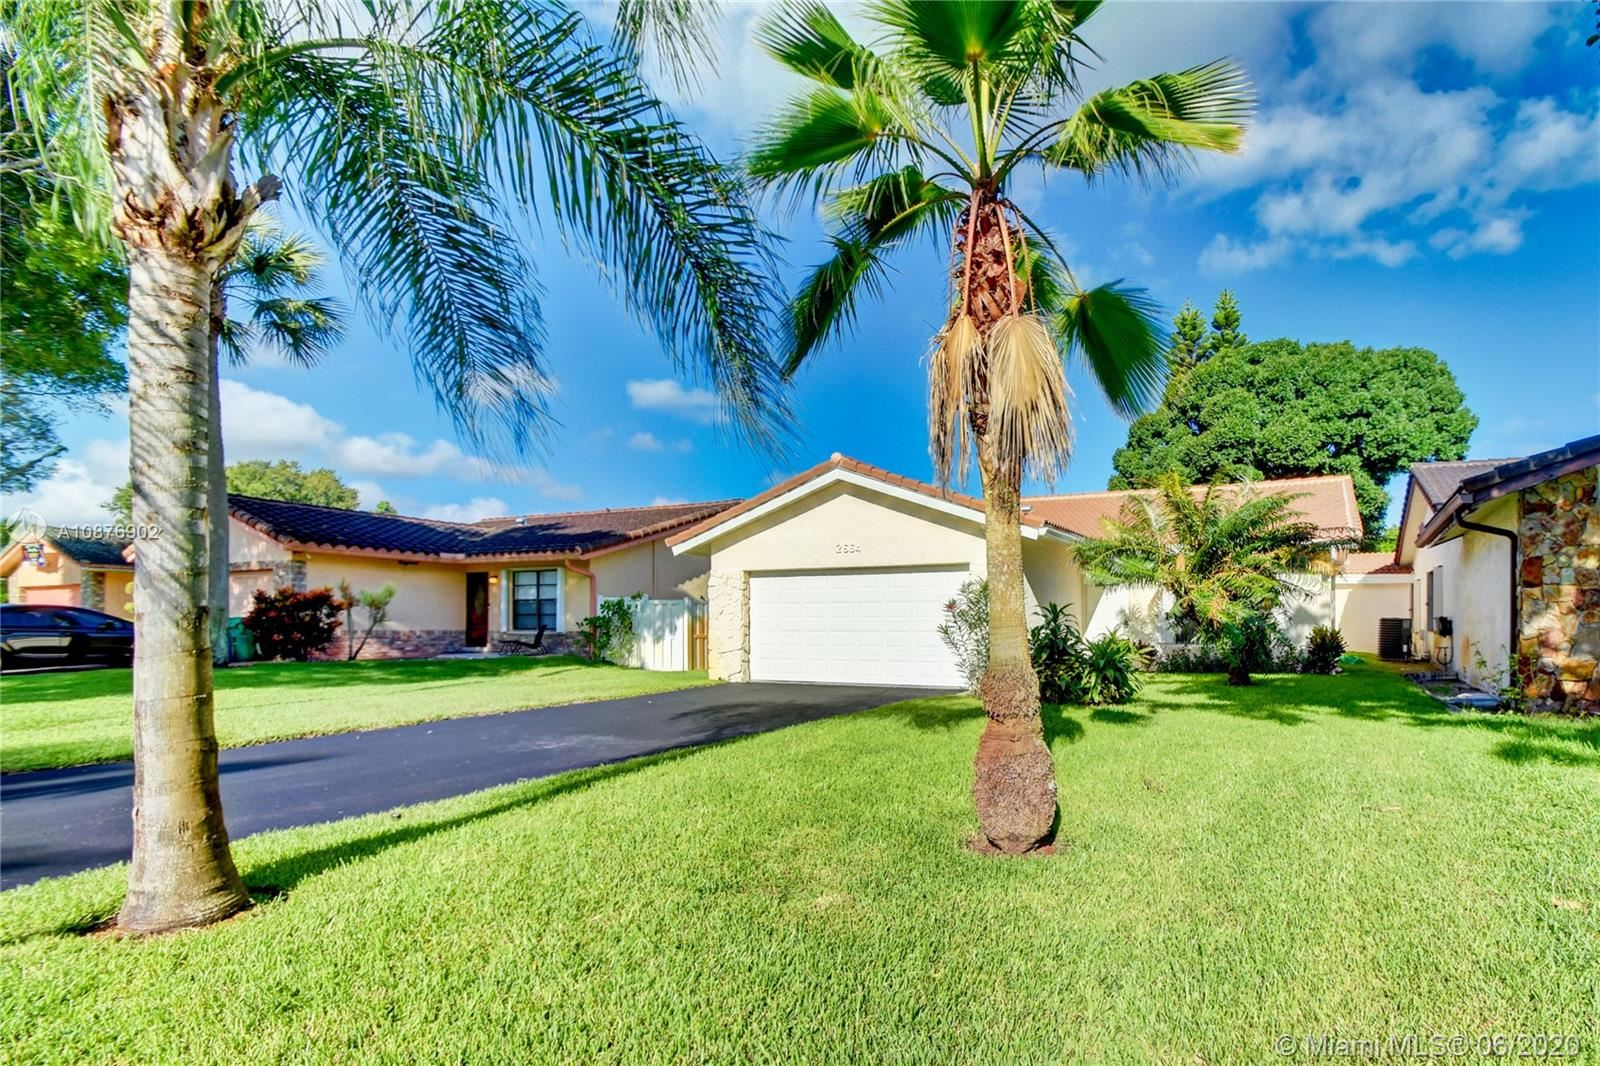 2664 NW 91st Ave, Coral Springs, FL 33065 - #: A10876902